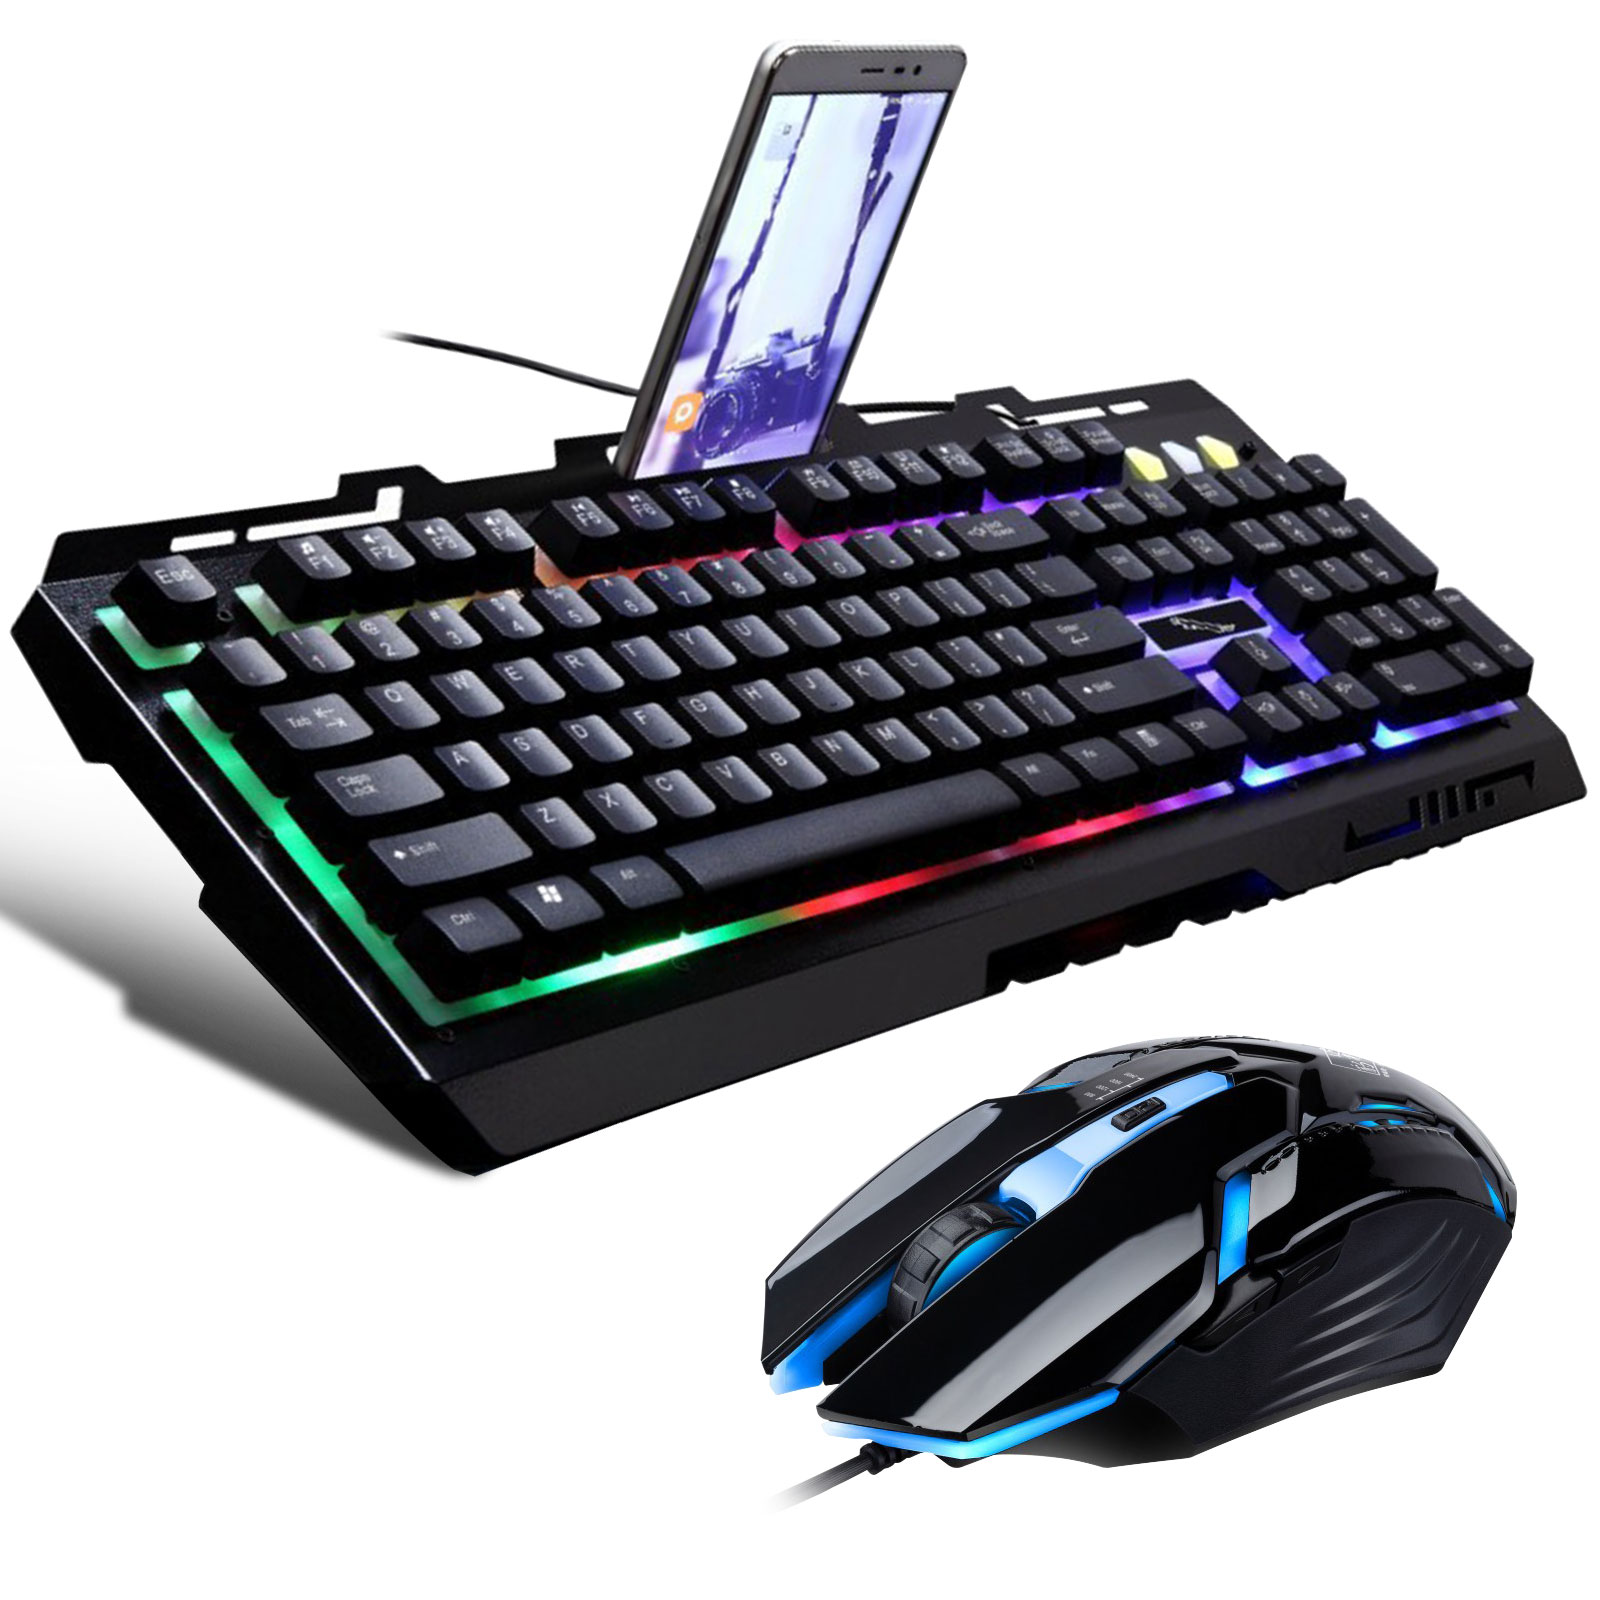 G700 Gaming Keyboard and Mouse Combo,TSV Ergonomic Keyboard with Colorful Backlight and 6 DPI Gaming Mouse,for PC/Gaming/Typing